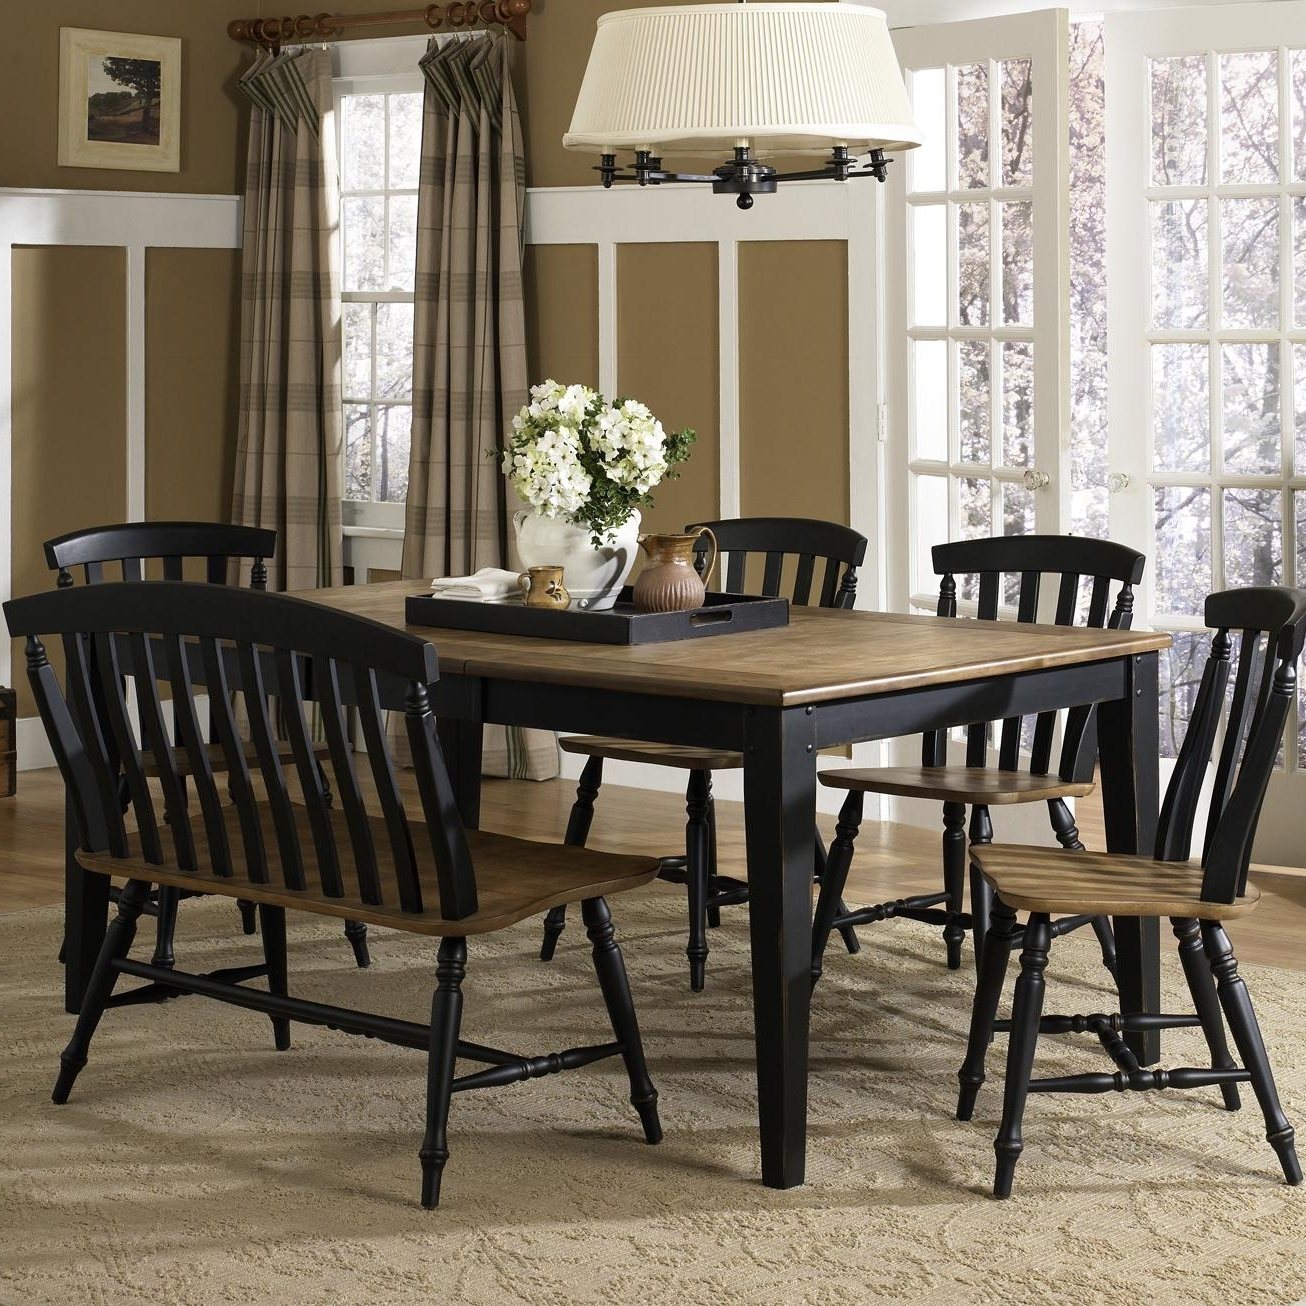 6 Seat Dining Table Sets Inside 2017 Liberty Furniture Al Fresco Ii Six Piece Dining Table Set With (View 16 of 25)